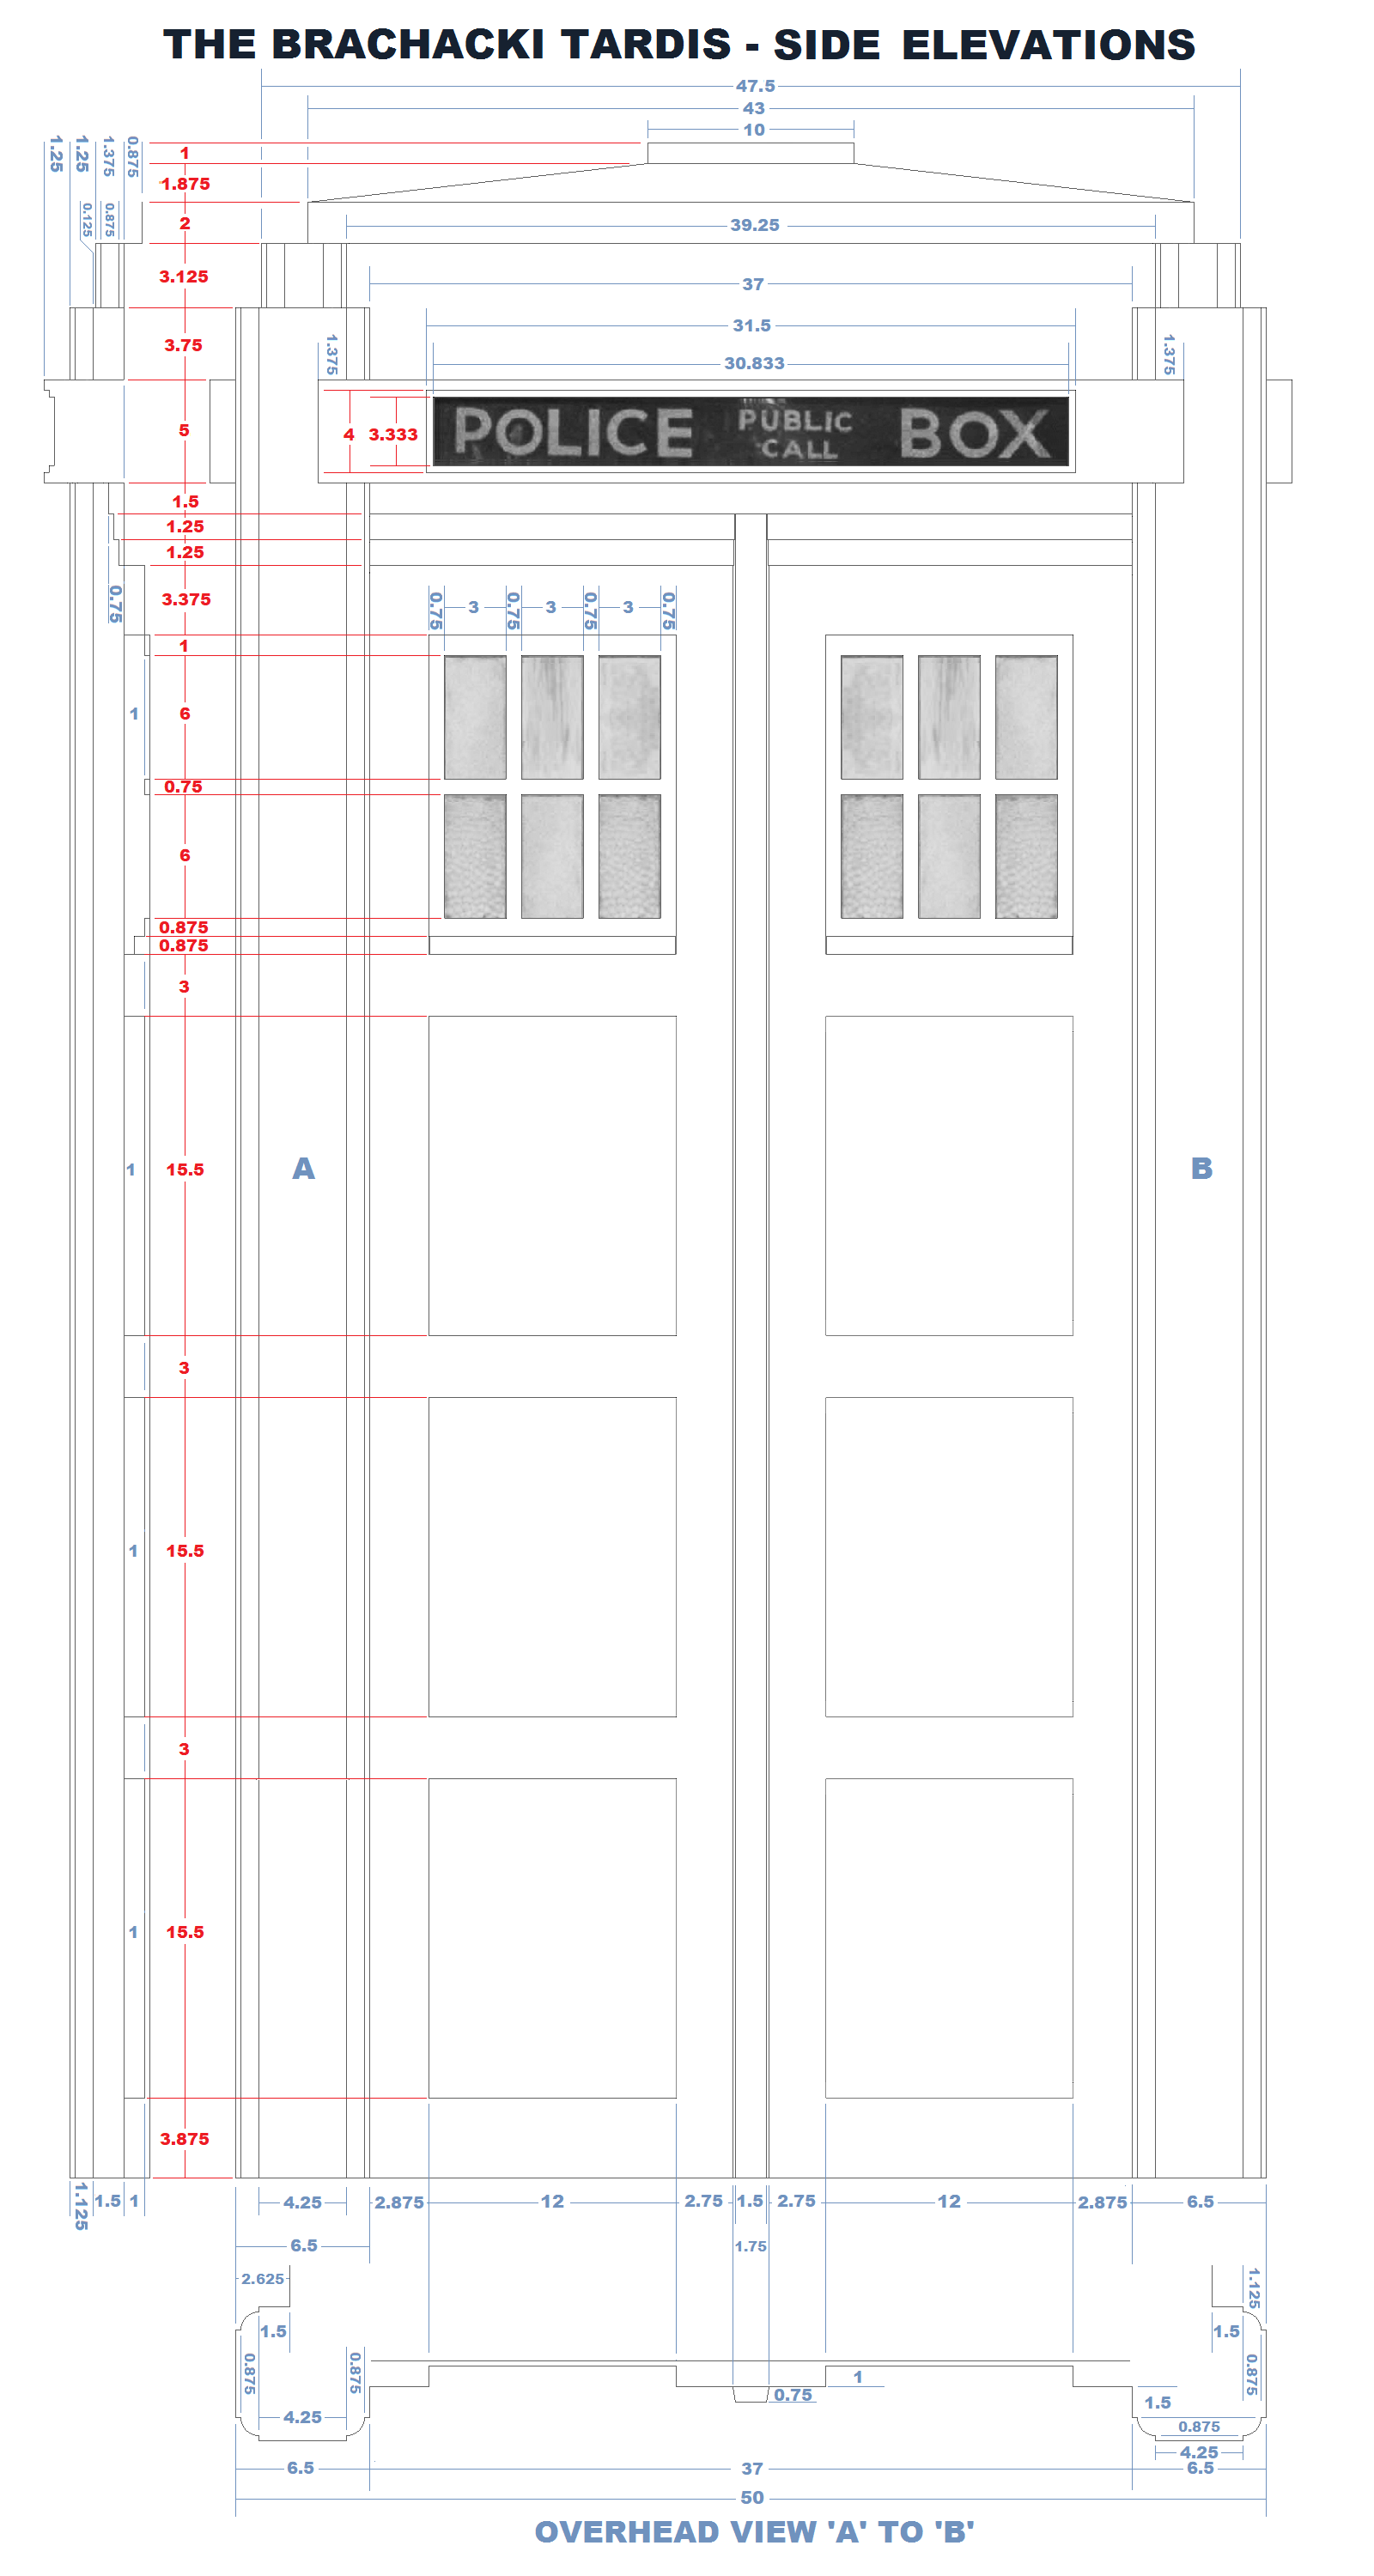 Brachacki Side Elevations with 0.875 quadrants - doors & sides set back by 0.125.png